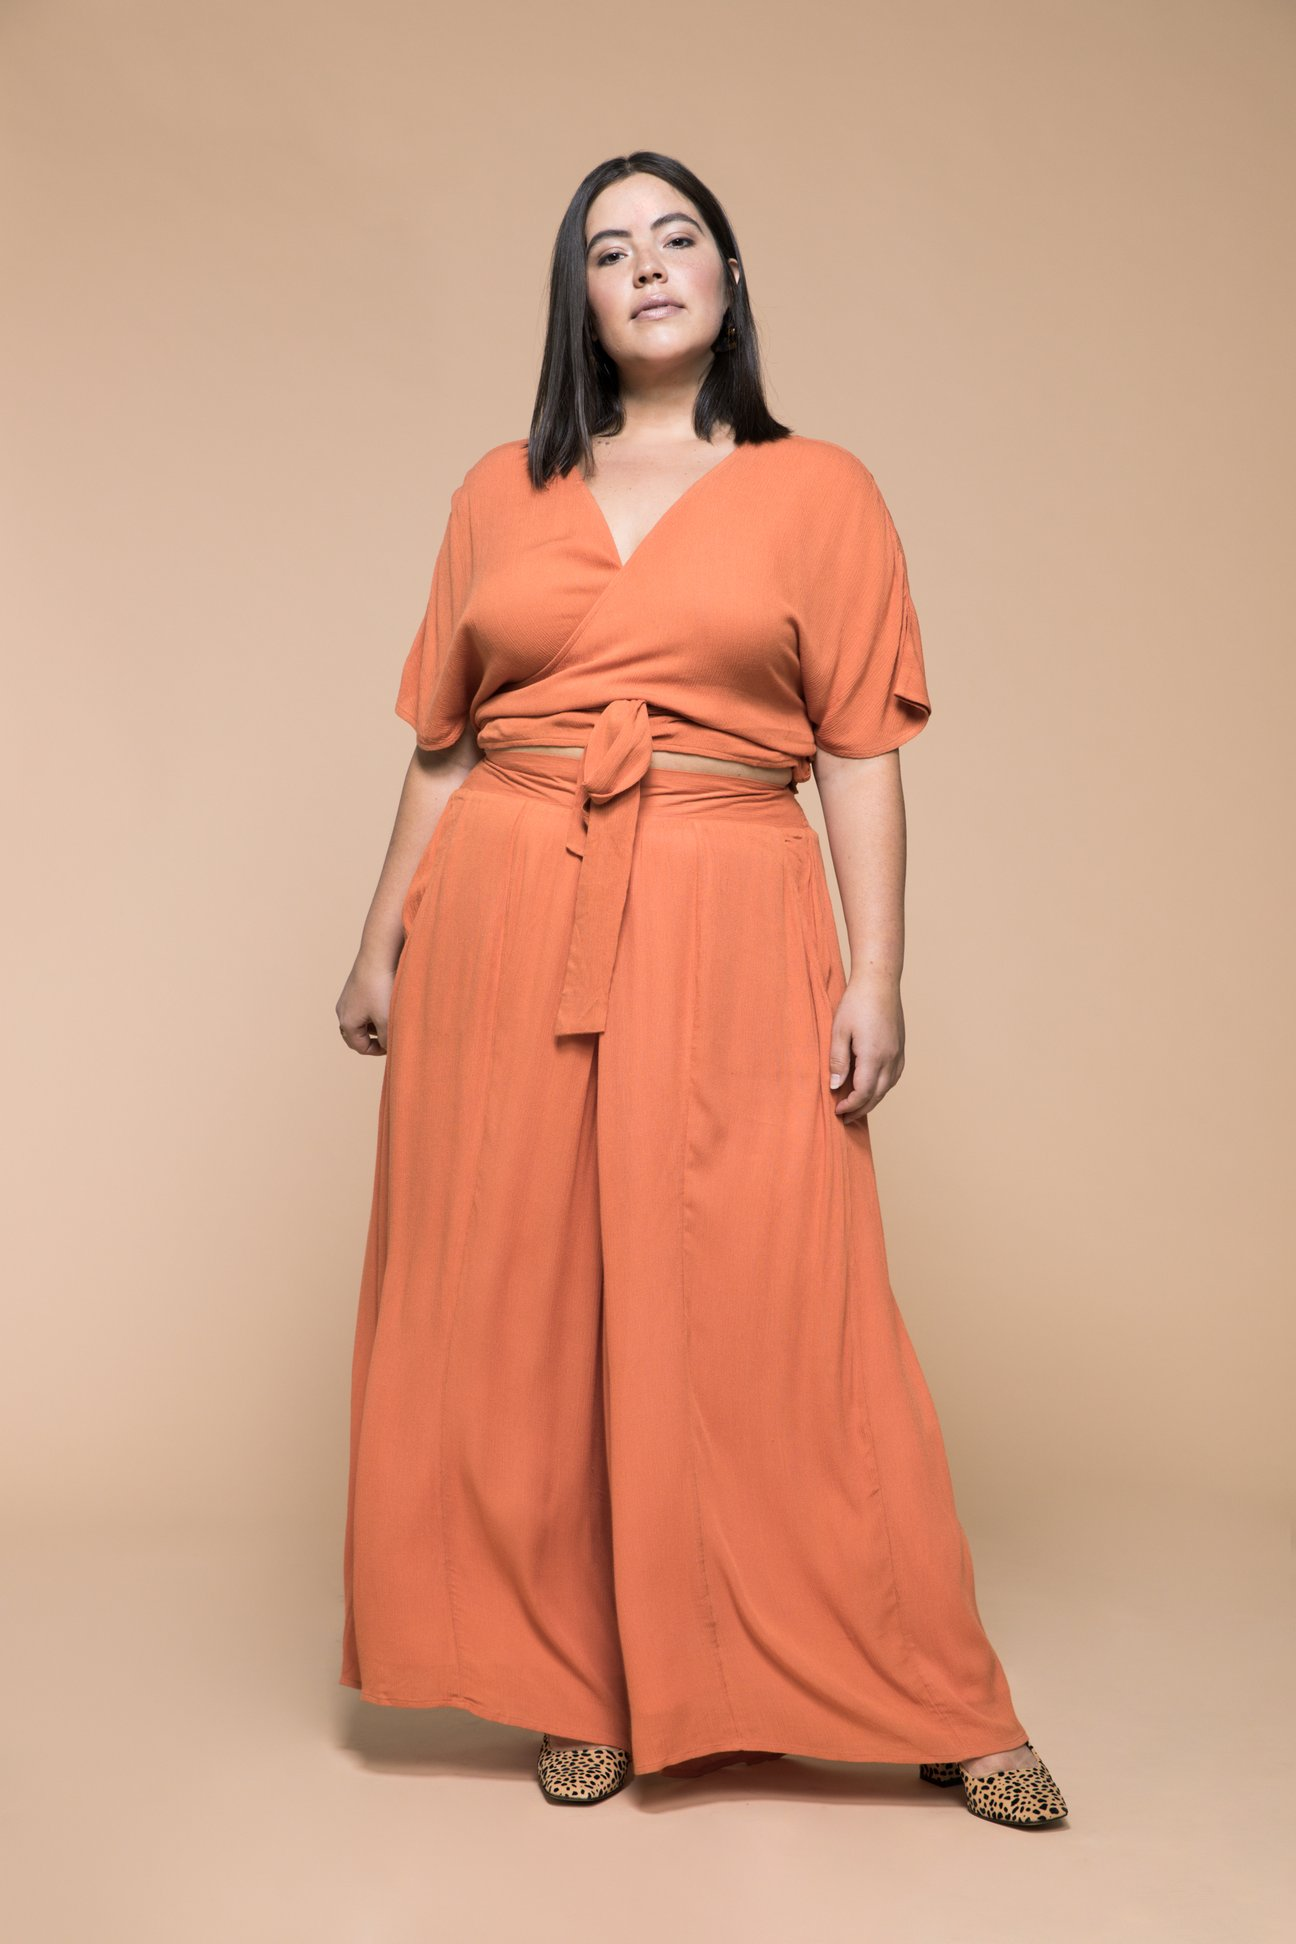 a1585643fa Their clothes run the spectrum from minimalist and sleek to colorful,  patterned, and fun. Their sizes run from US 12 – 32 (European 42 – 60).